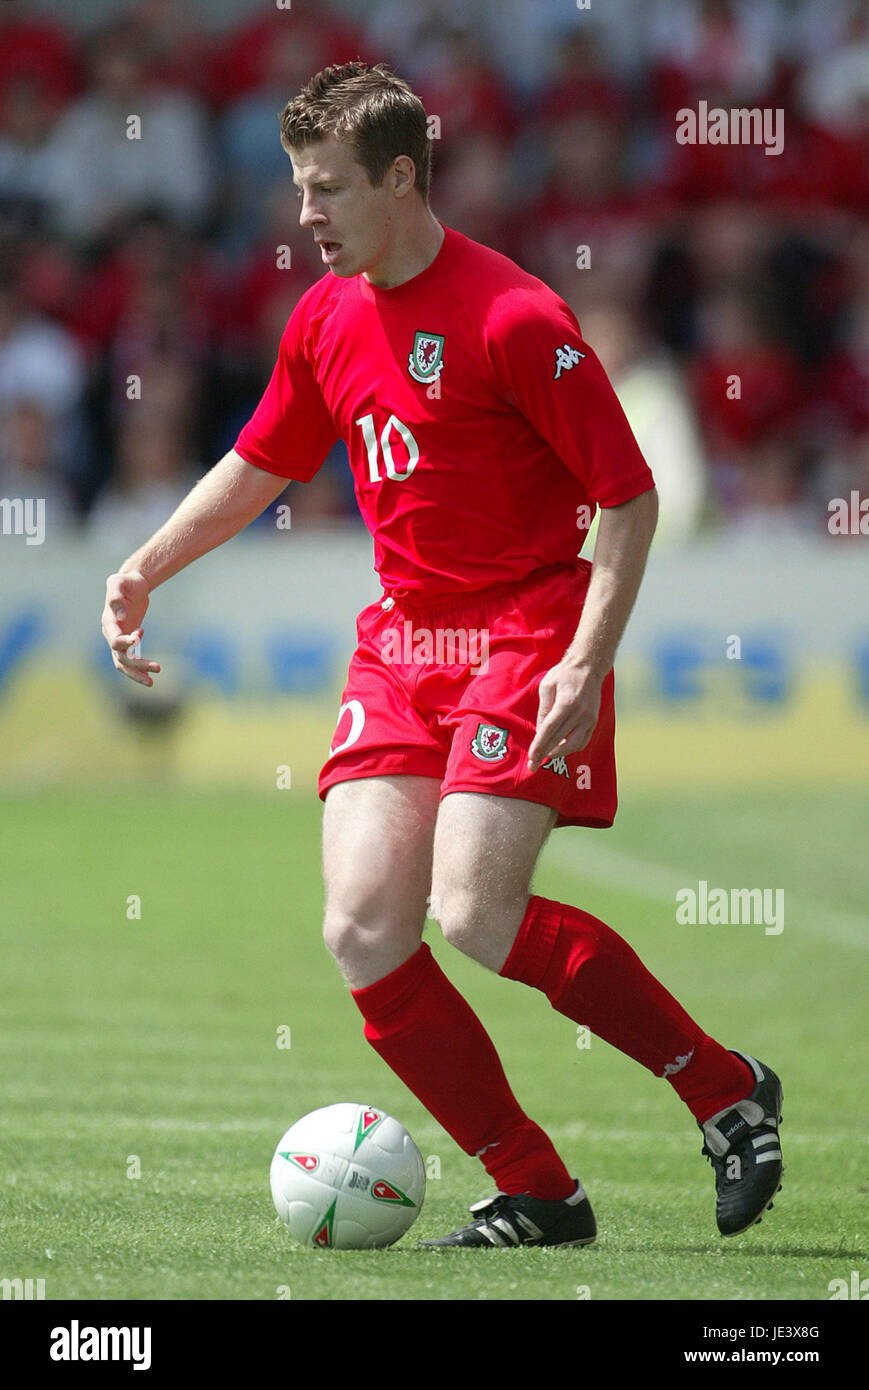 PAUL PARRY WALES & CARDIFF CITY RACECOURSE FROUND WREXHAM WALES 30 May 2004 - Stock Image